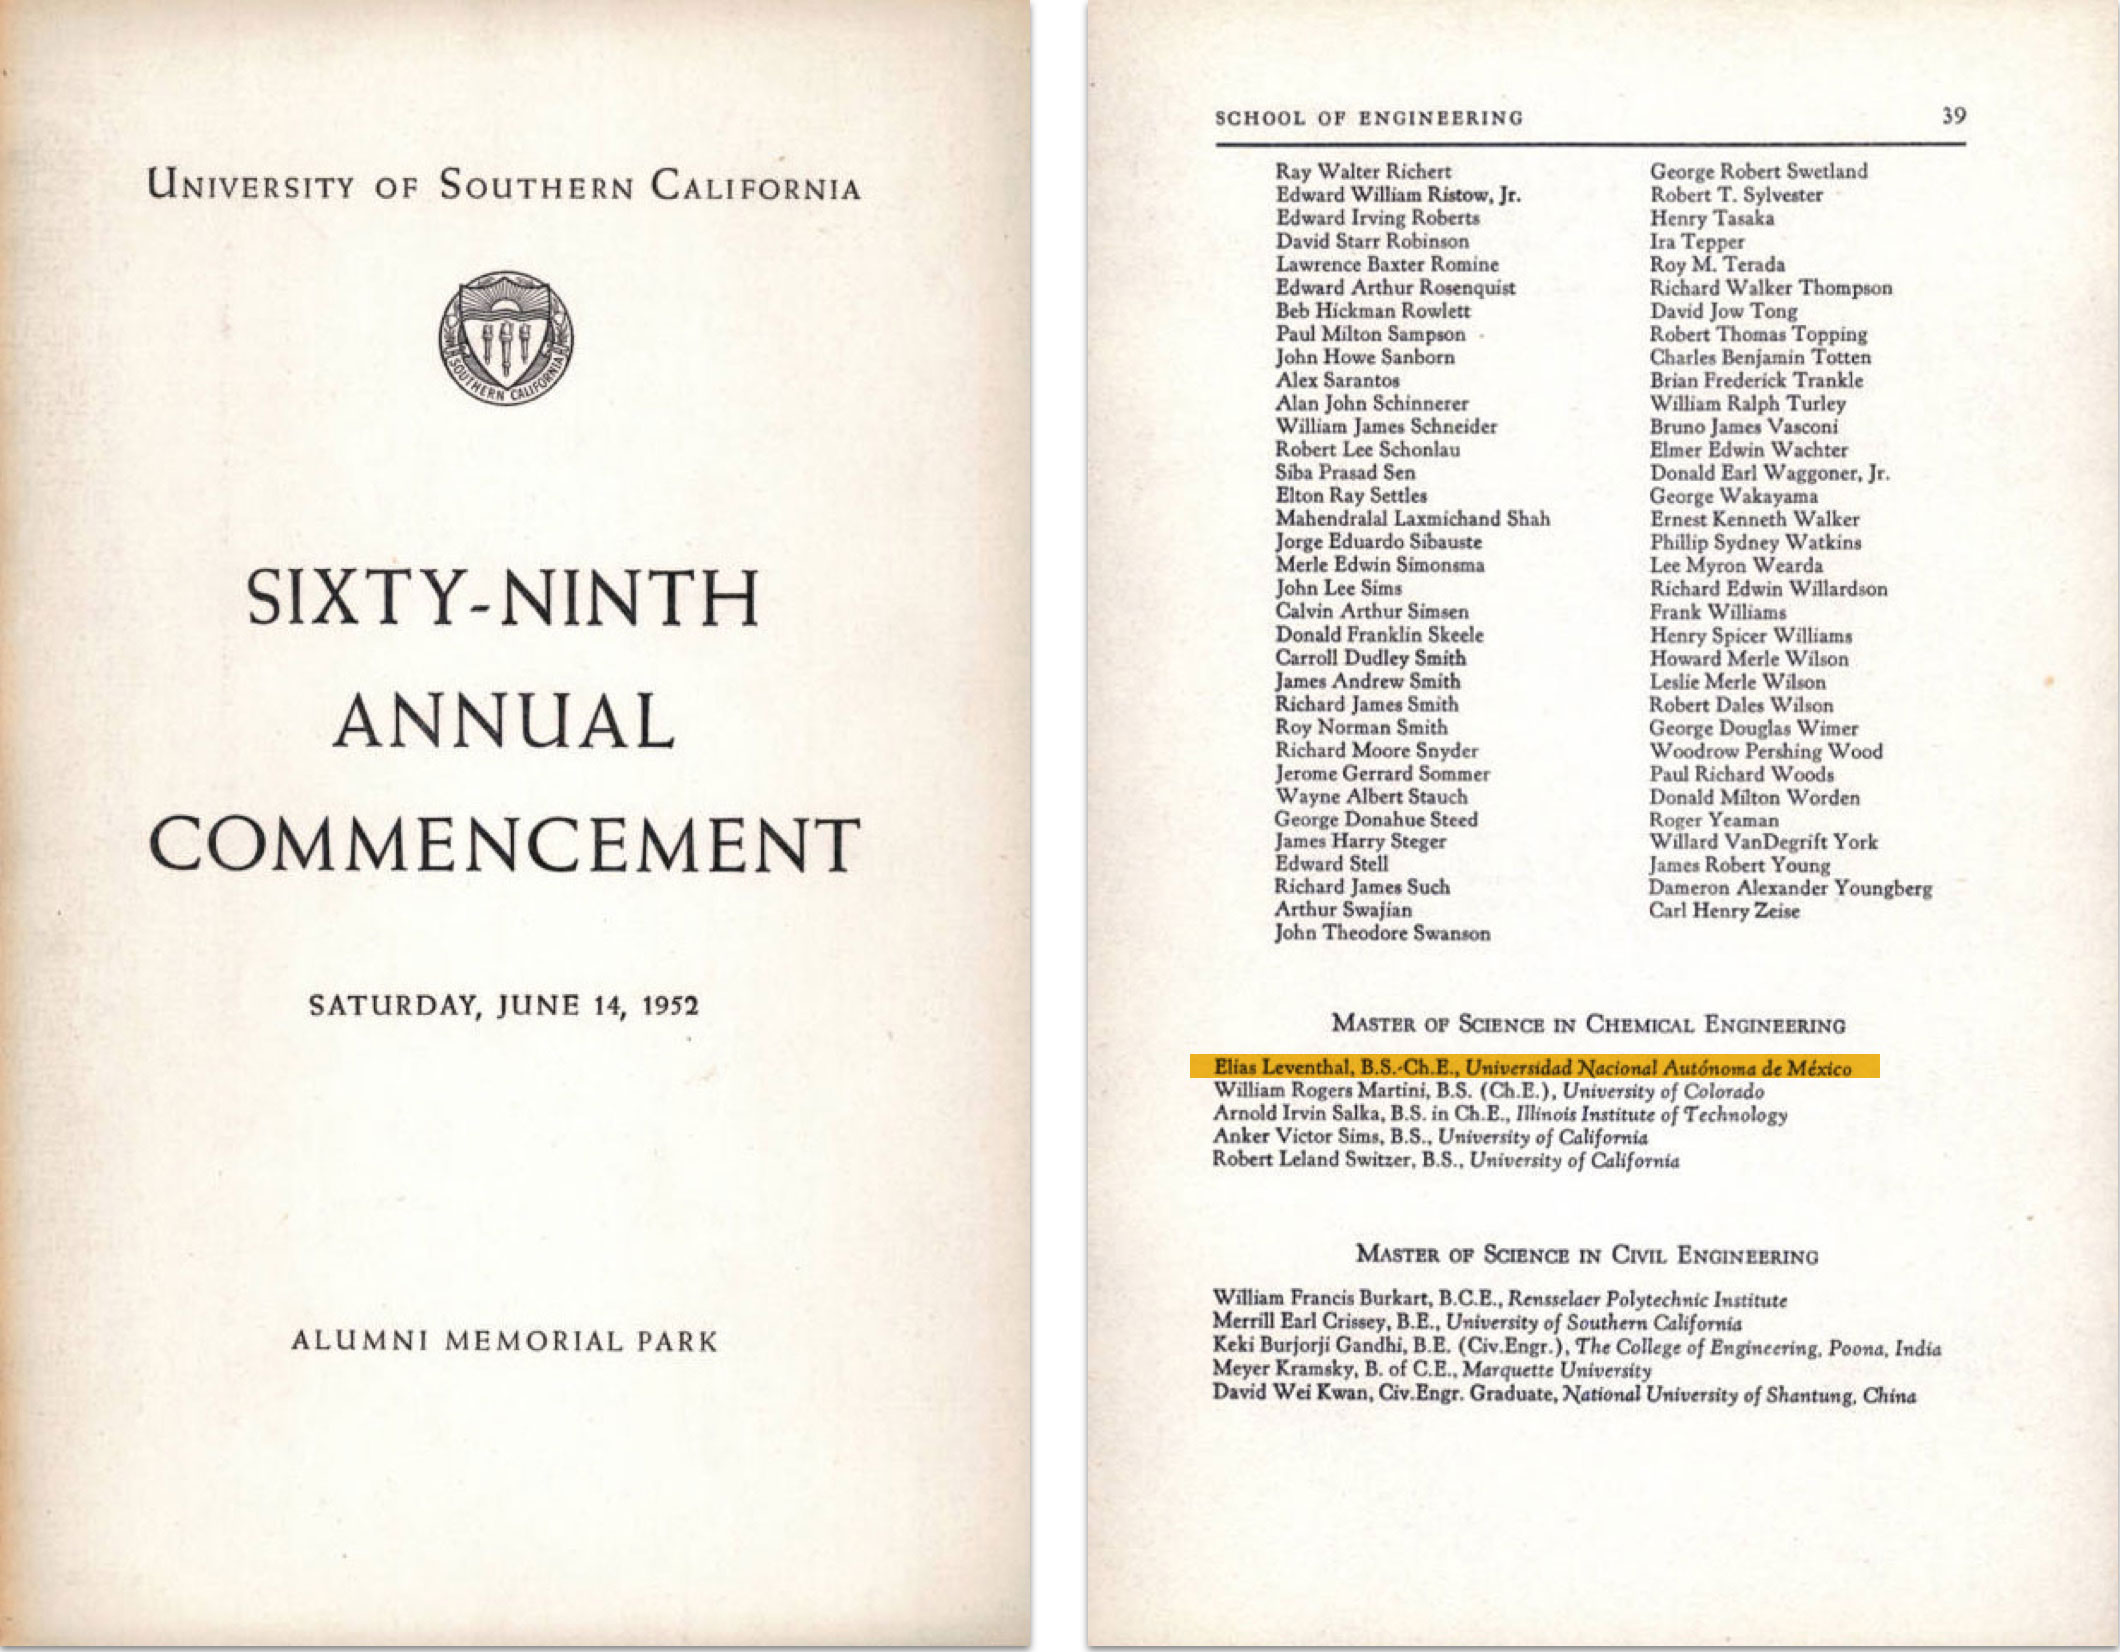 Photo of USC Sixty-ninth Annual Commencement program